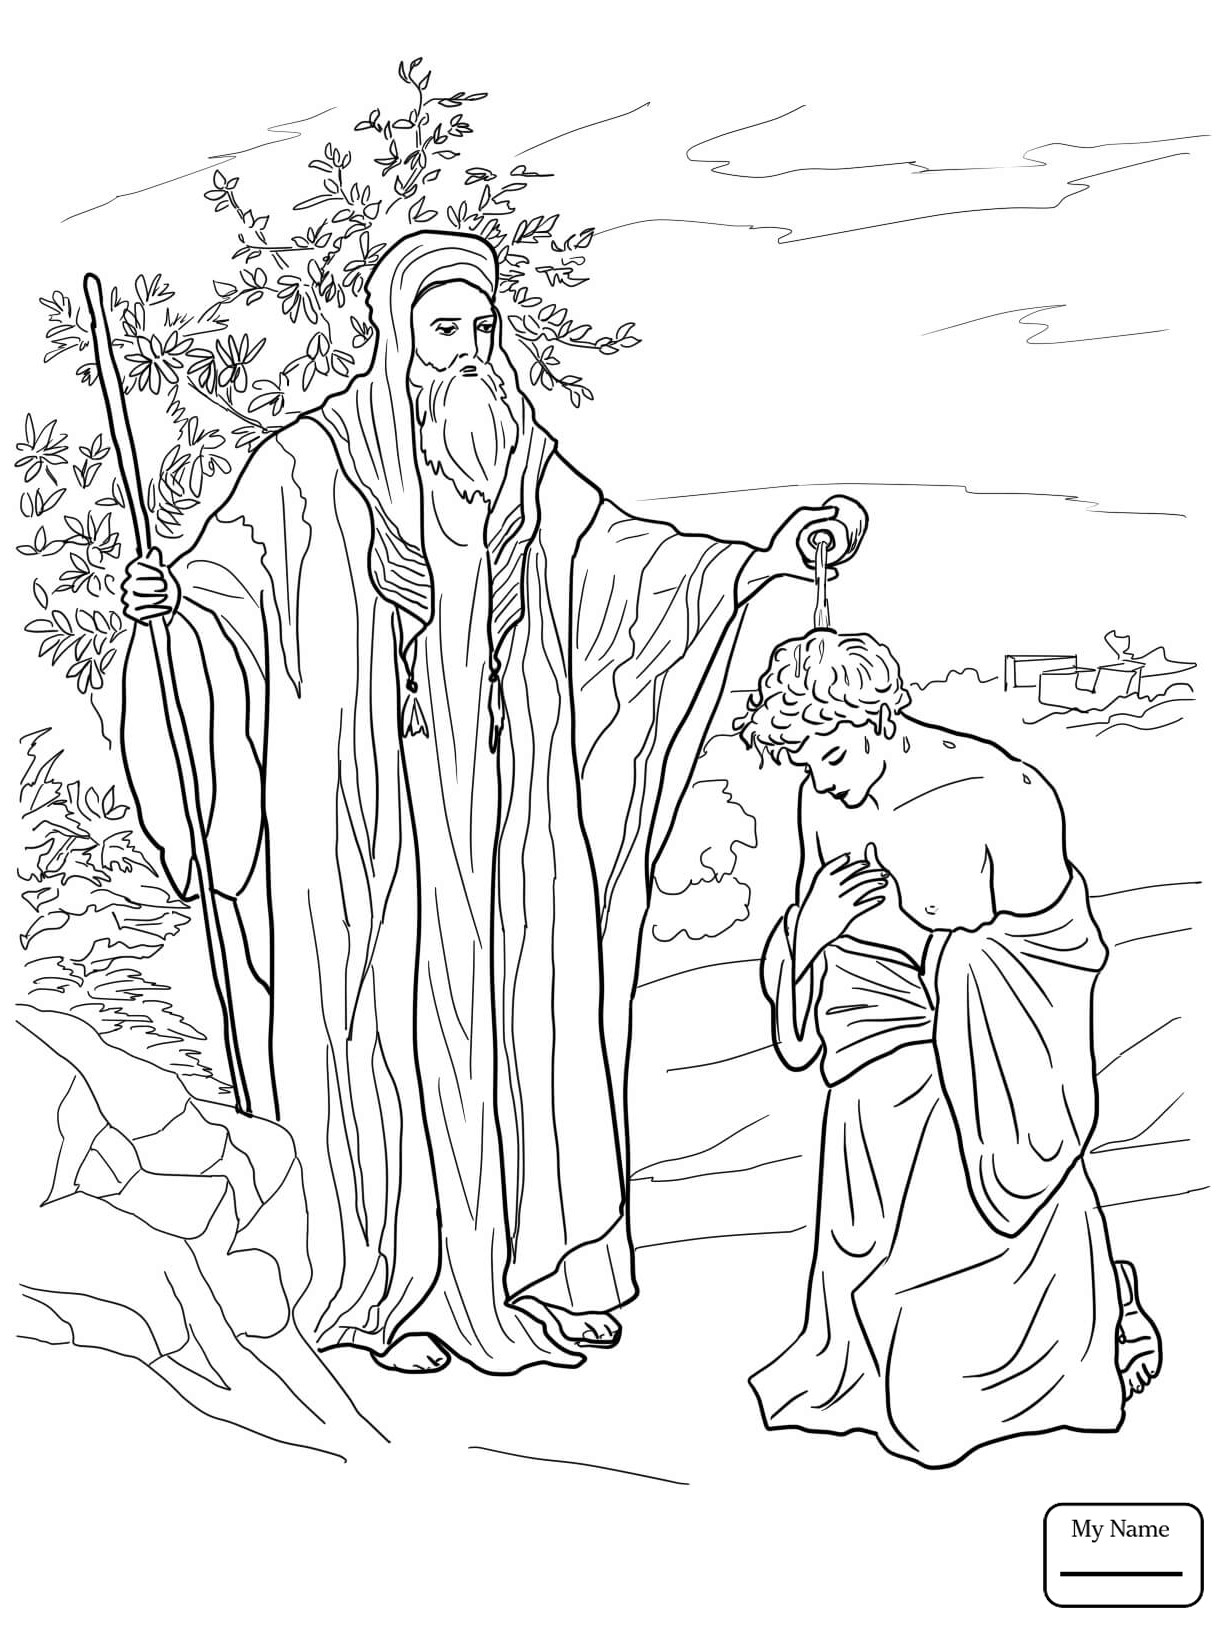 David And Saul Coloring Page At Getcolorings